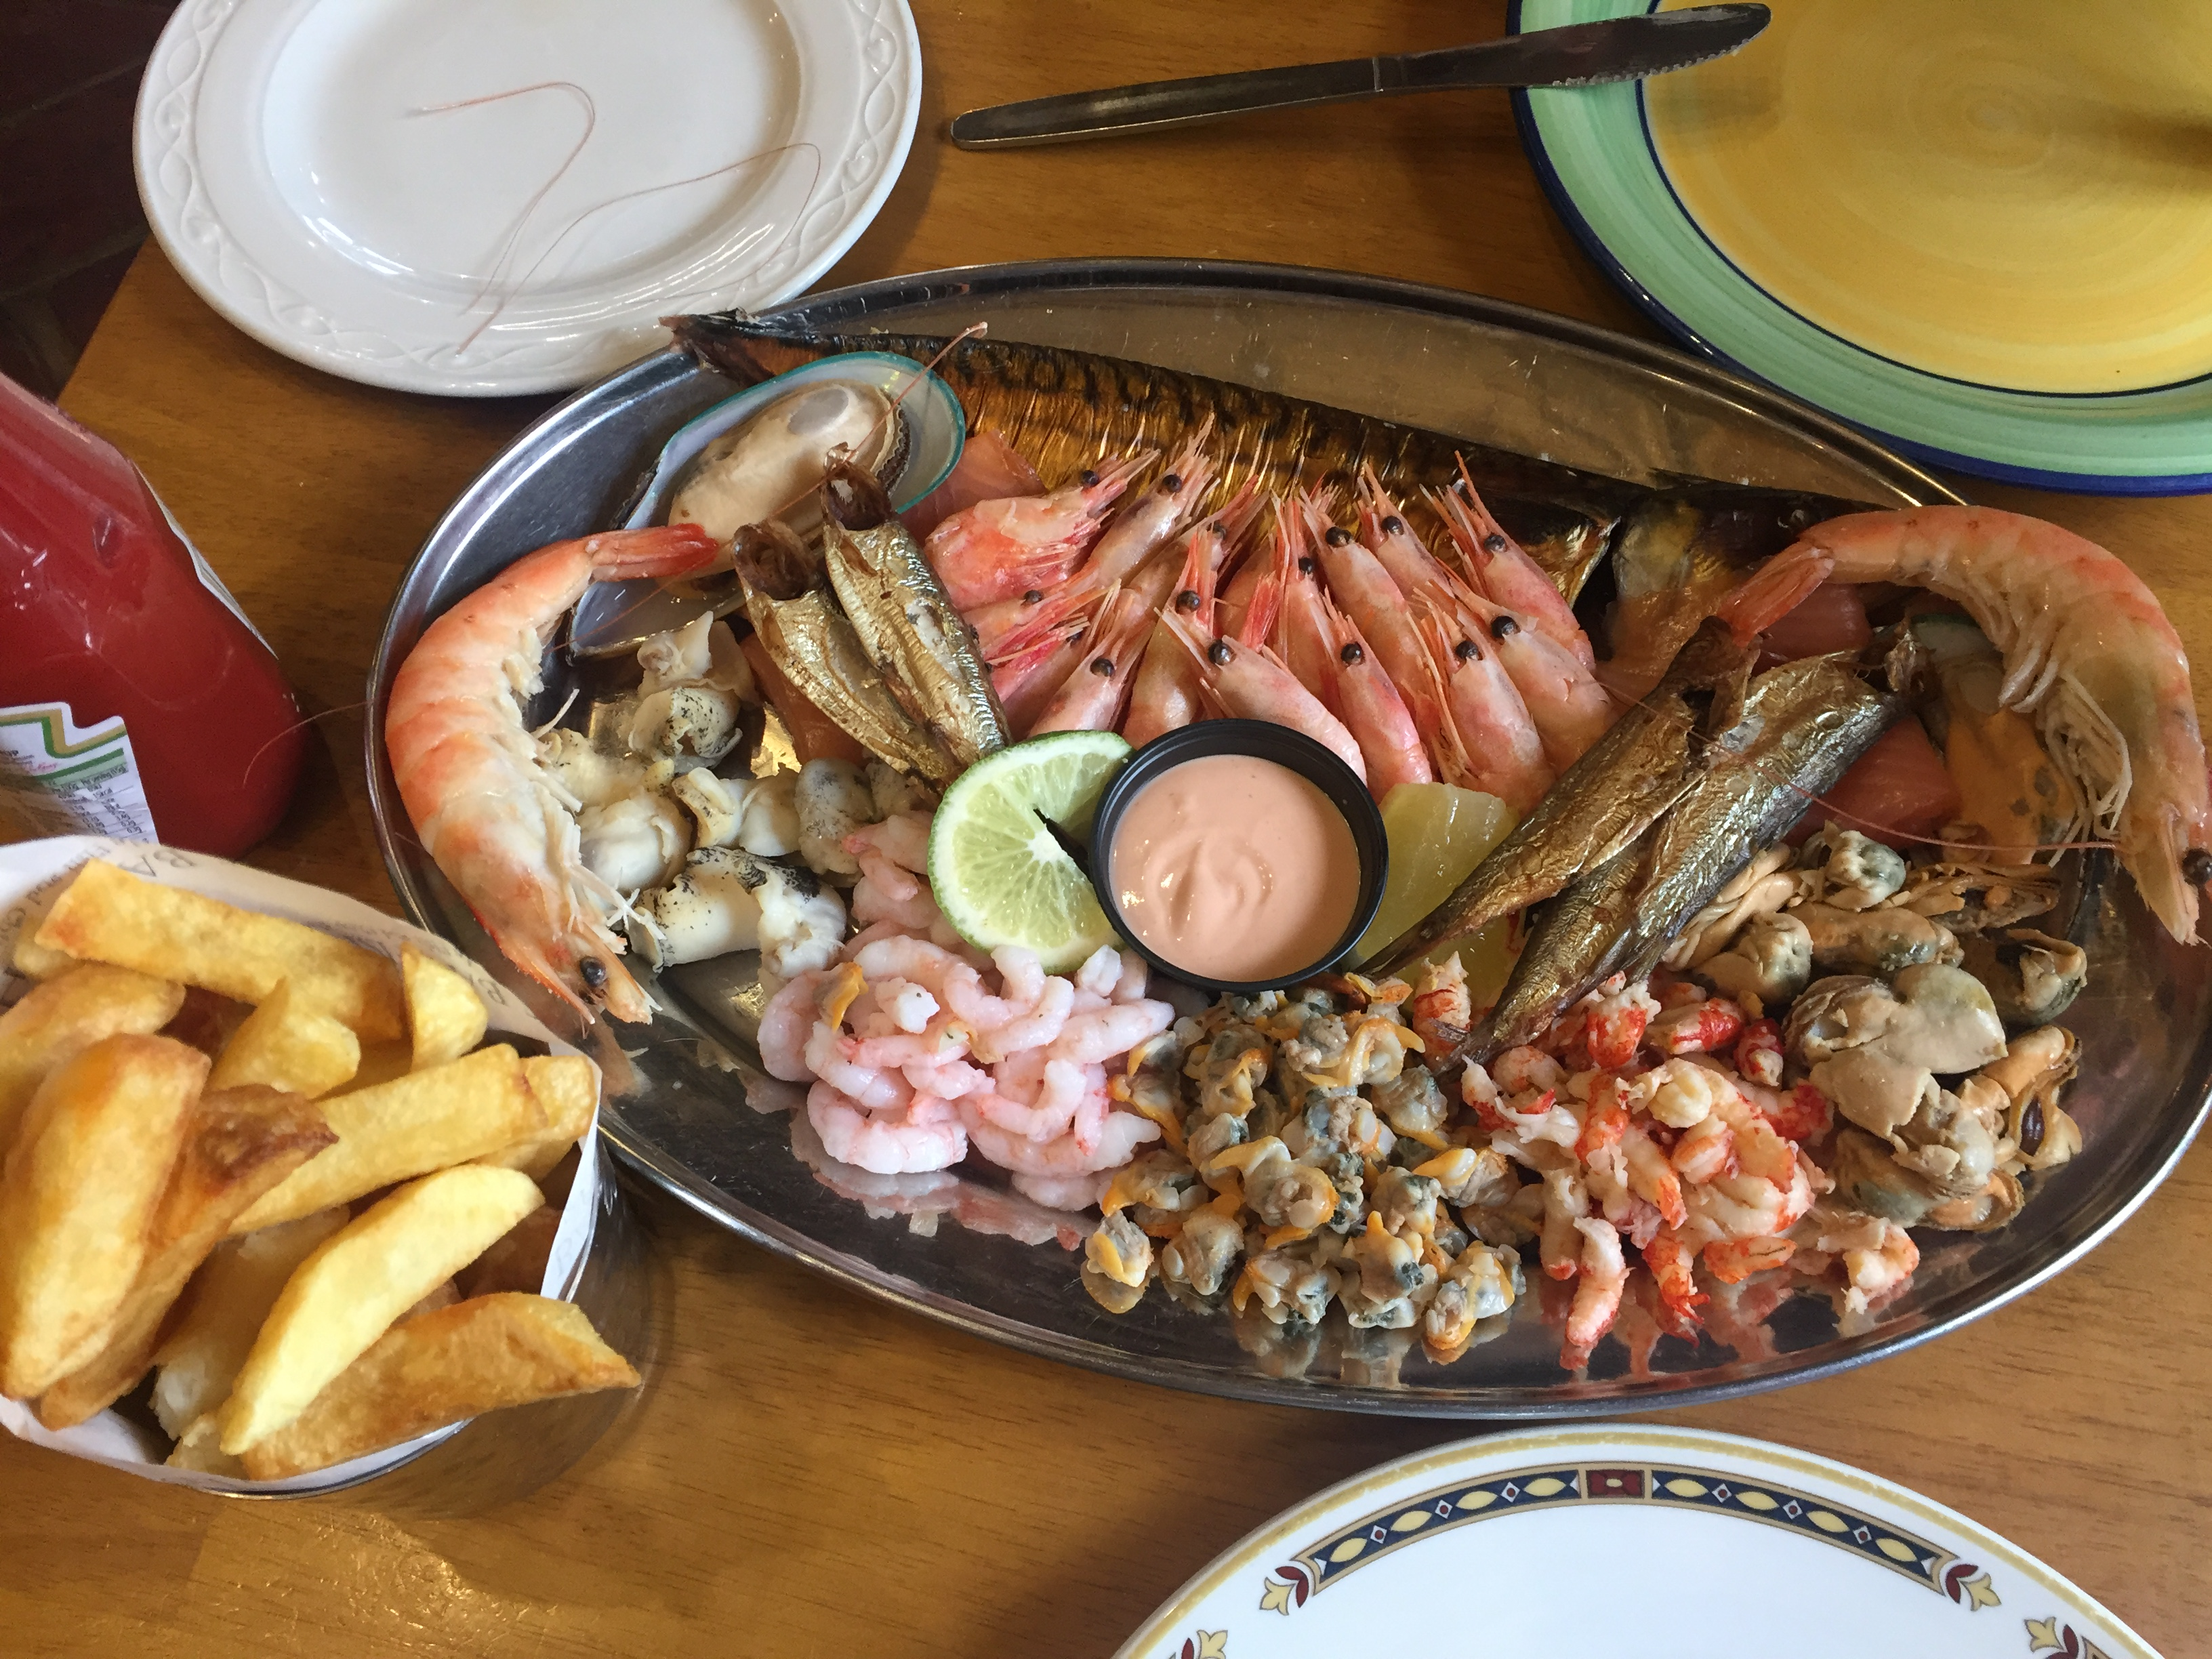 Our seafood feast at Sole Bay Fish Company.